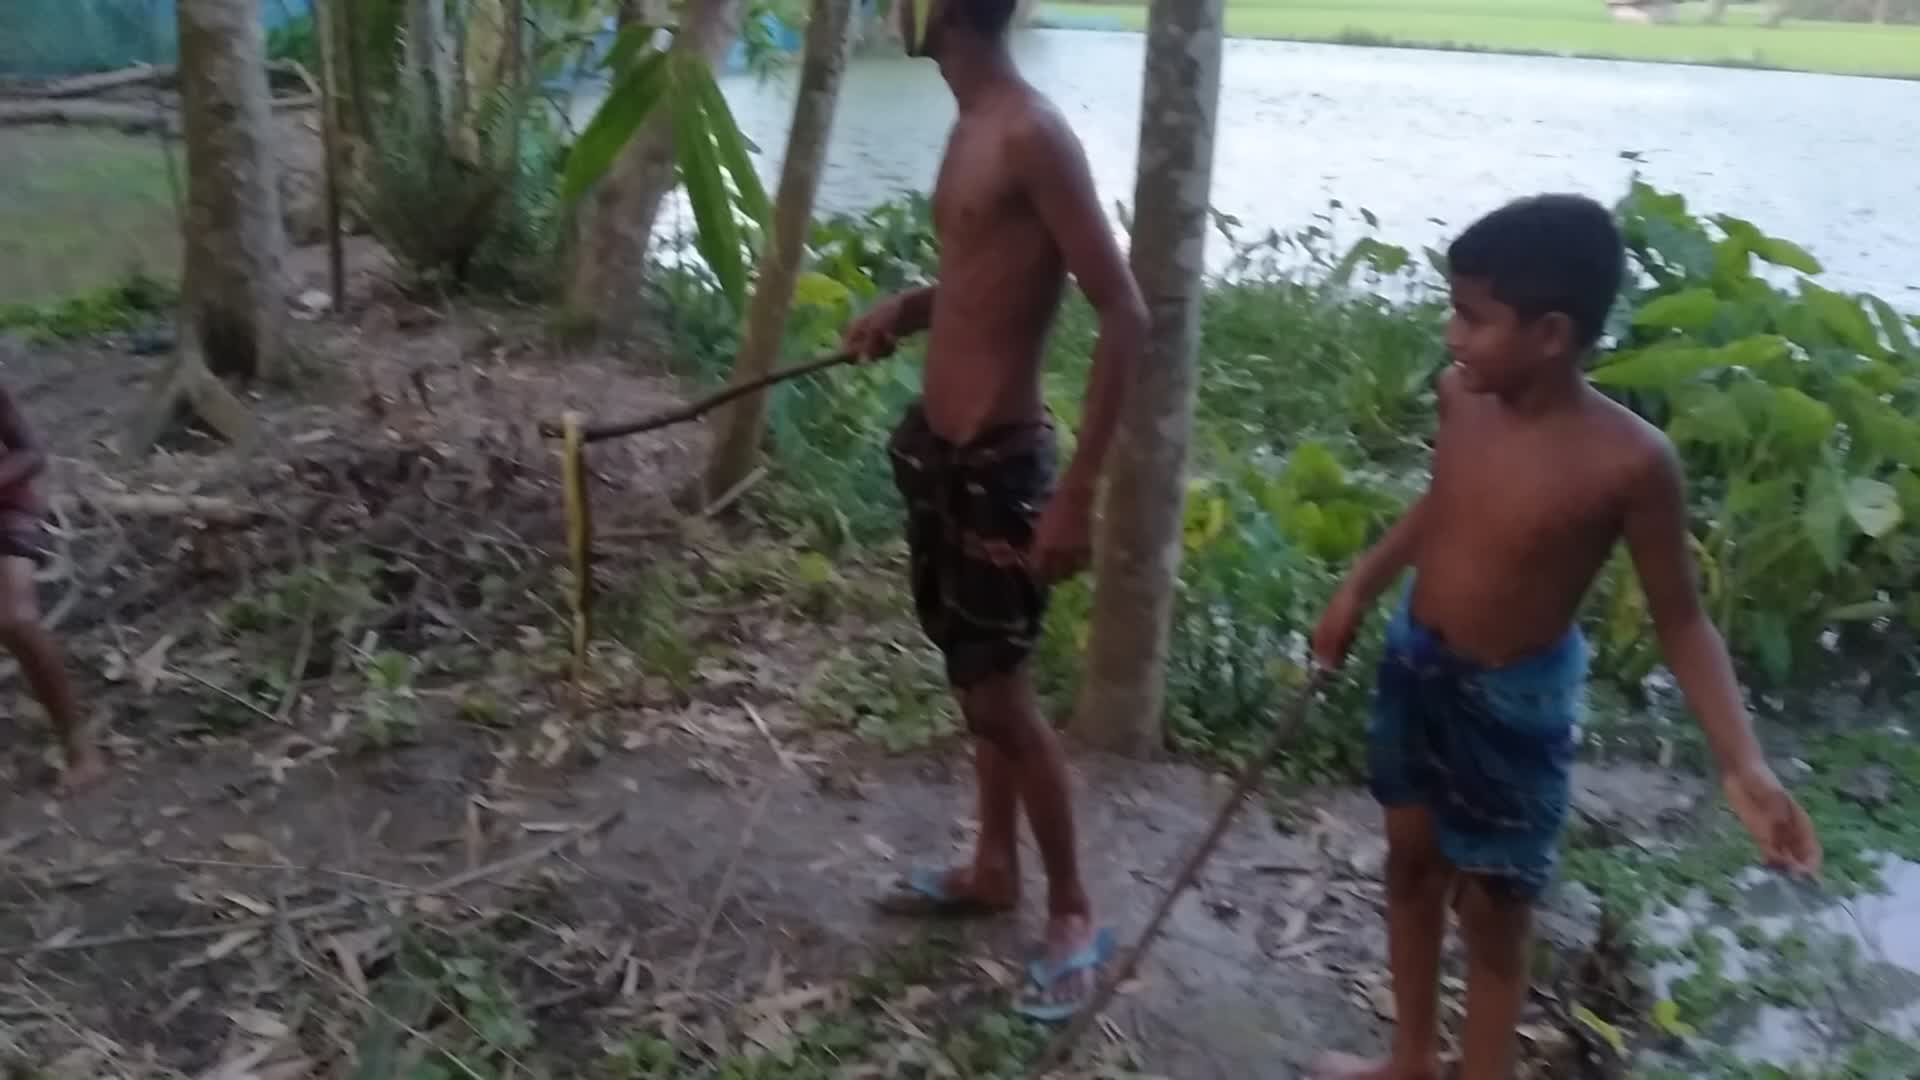 This video shows the boys playing with snakes.